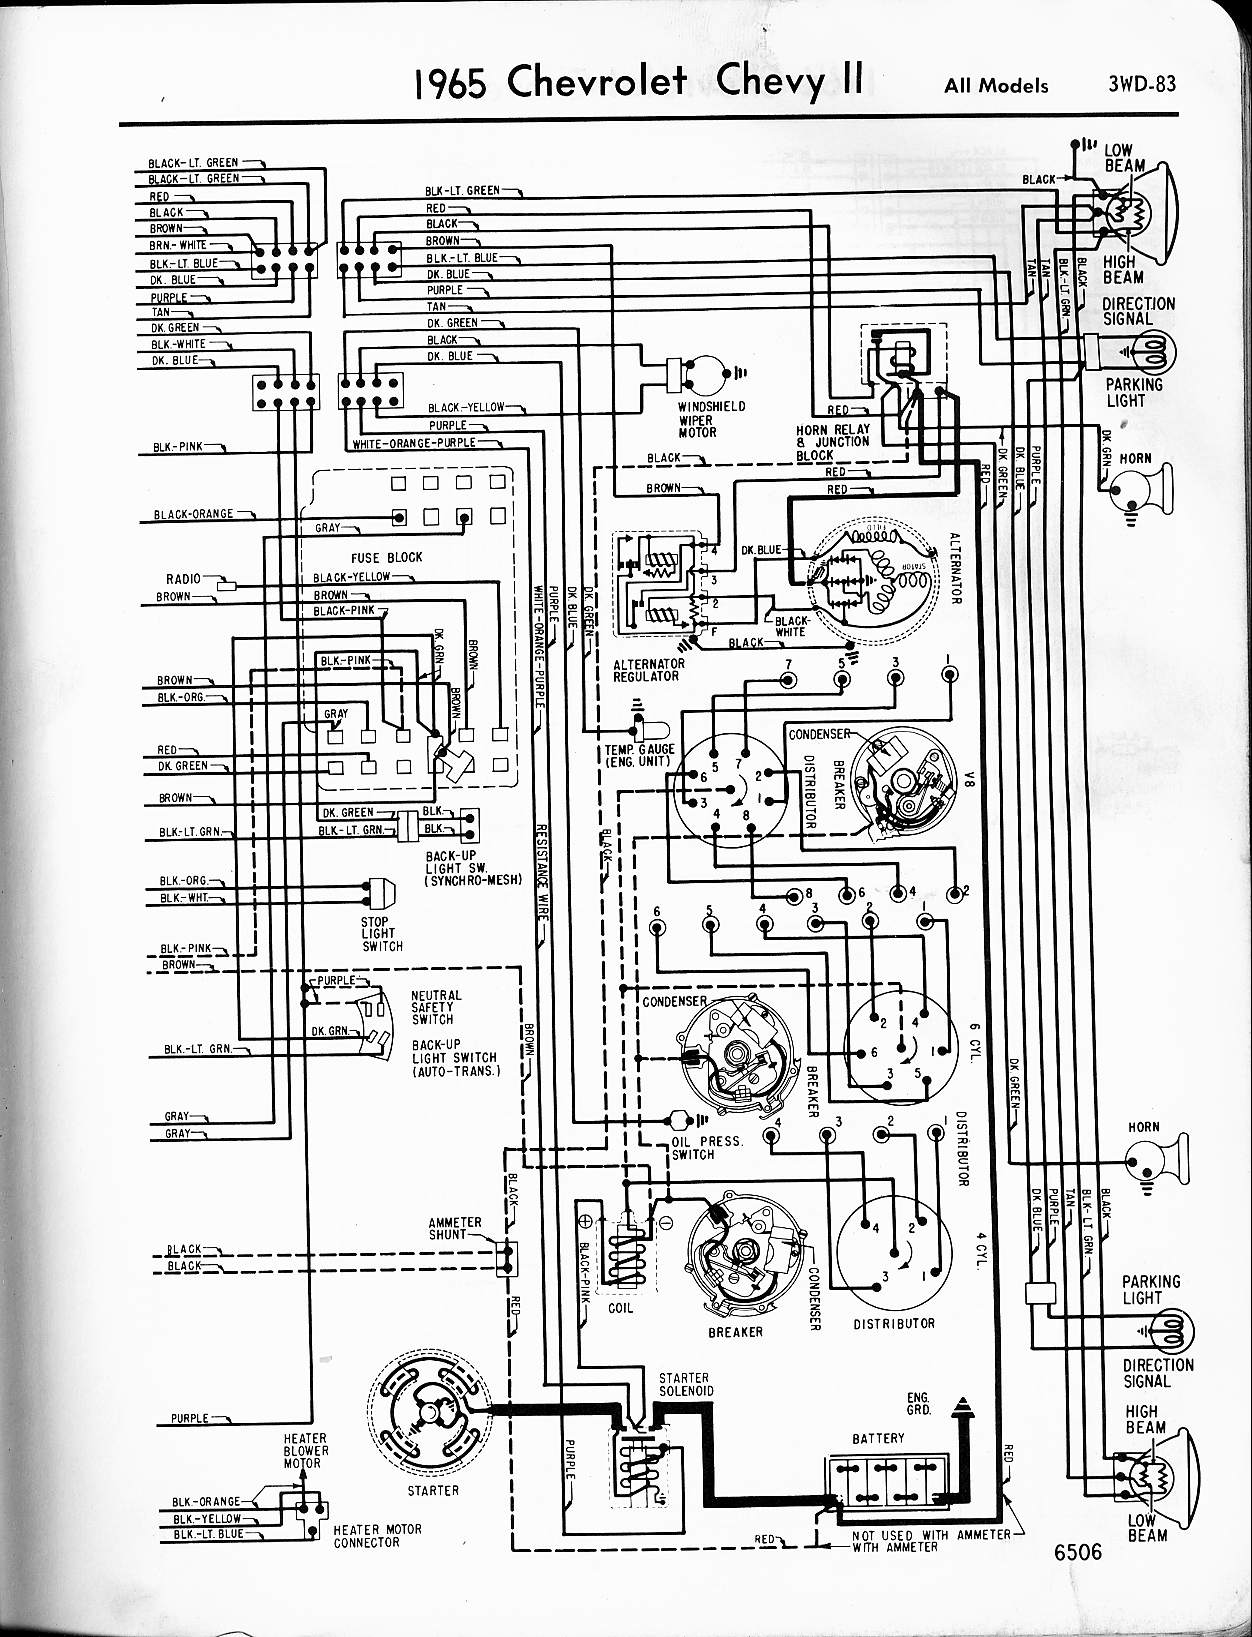 MWireChev65_3WD 083 chevy diagrams 1963 mercury comet wiring diagram at fashall.co